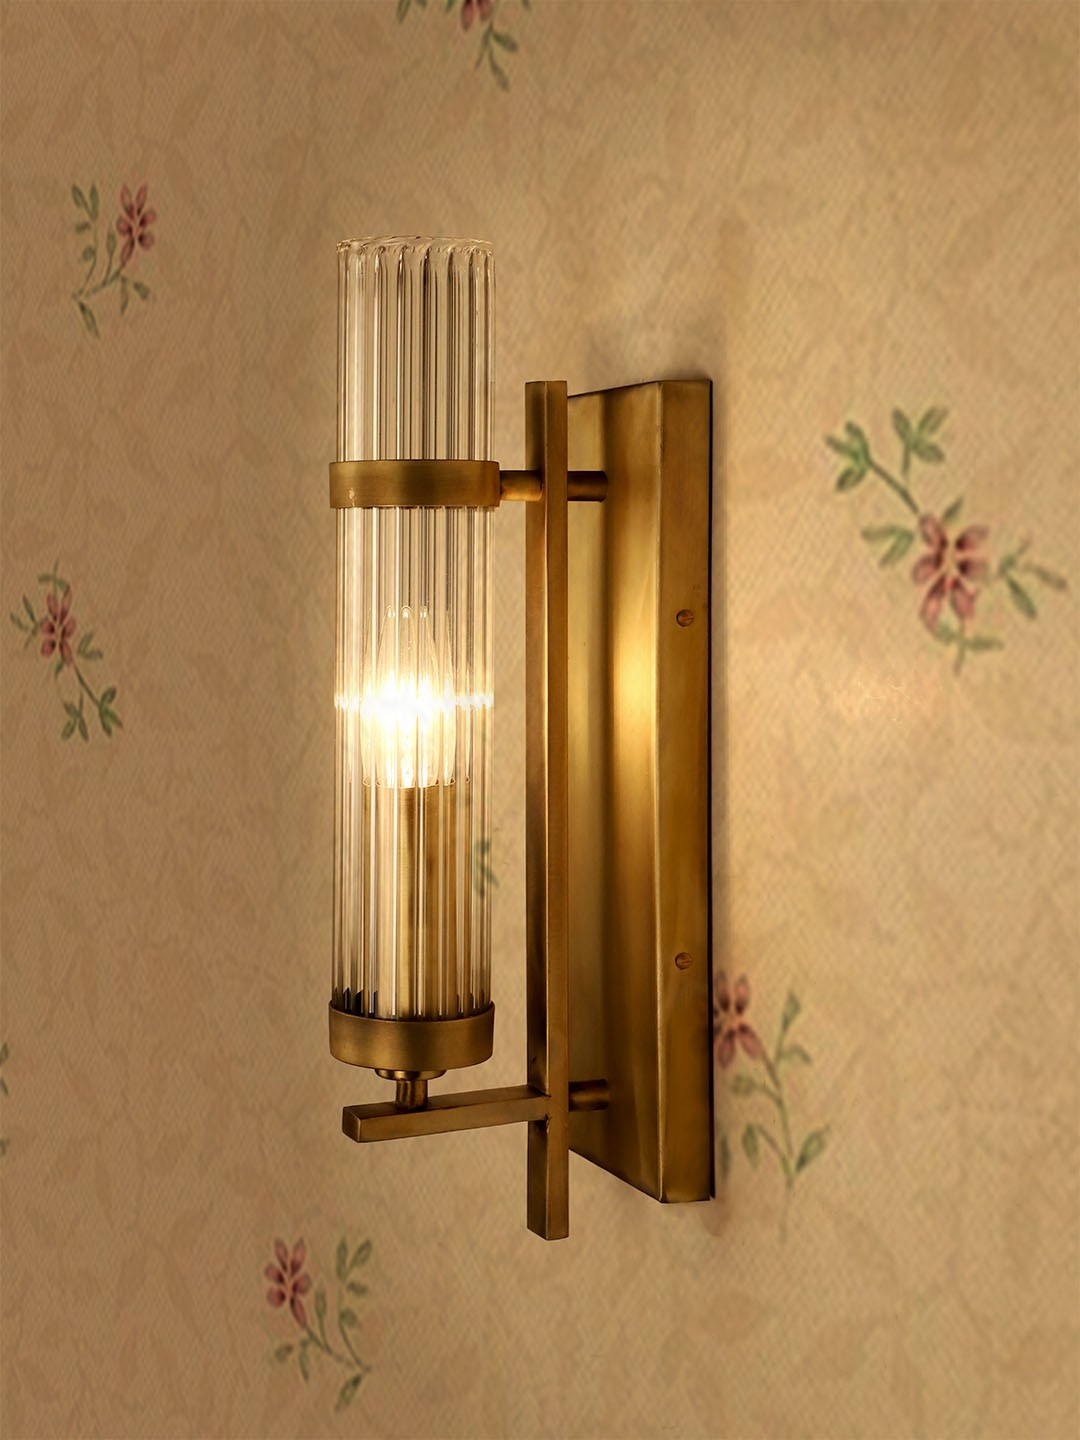 Rectangular Wall Sconce in Antique Brass Finish with Fluted Glass Tube